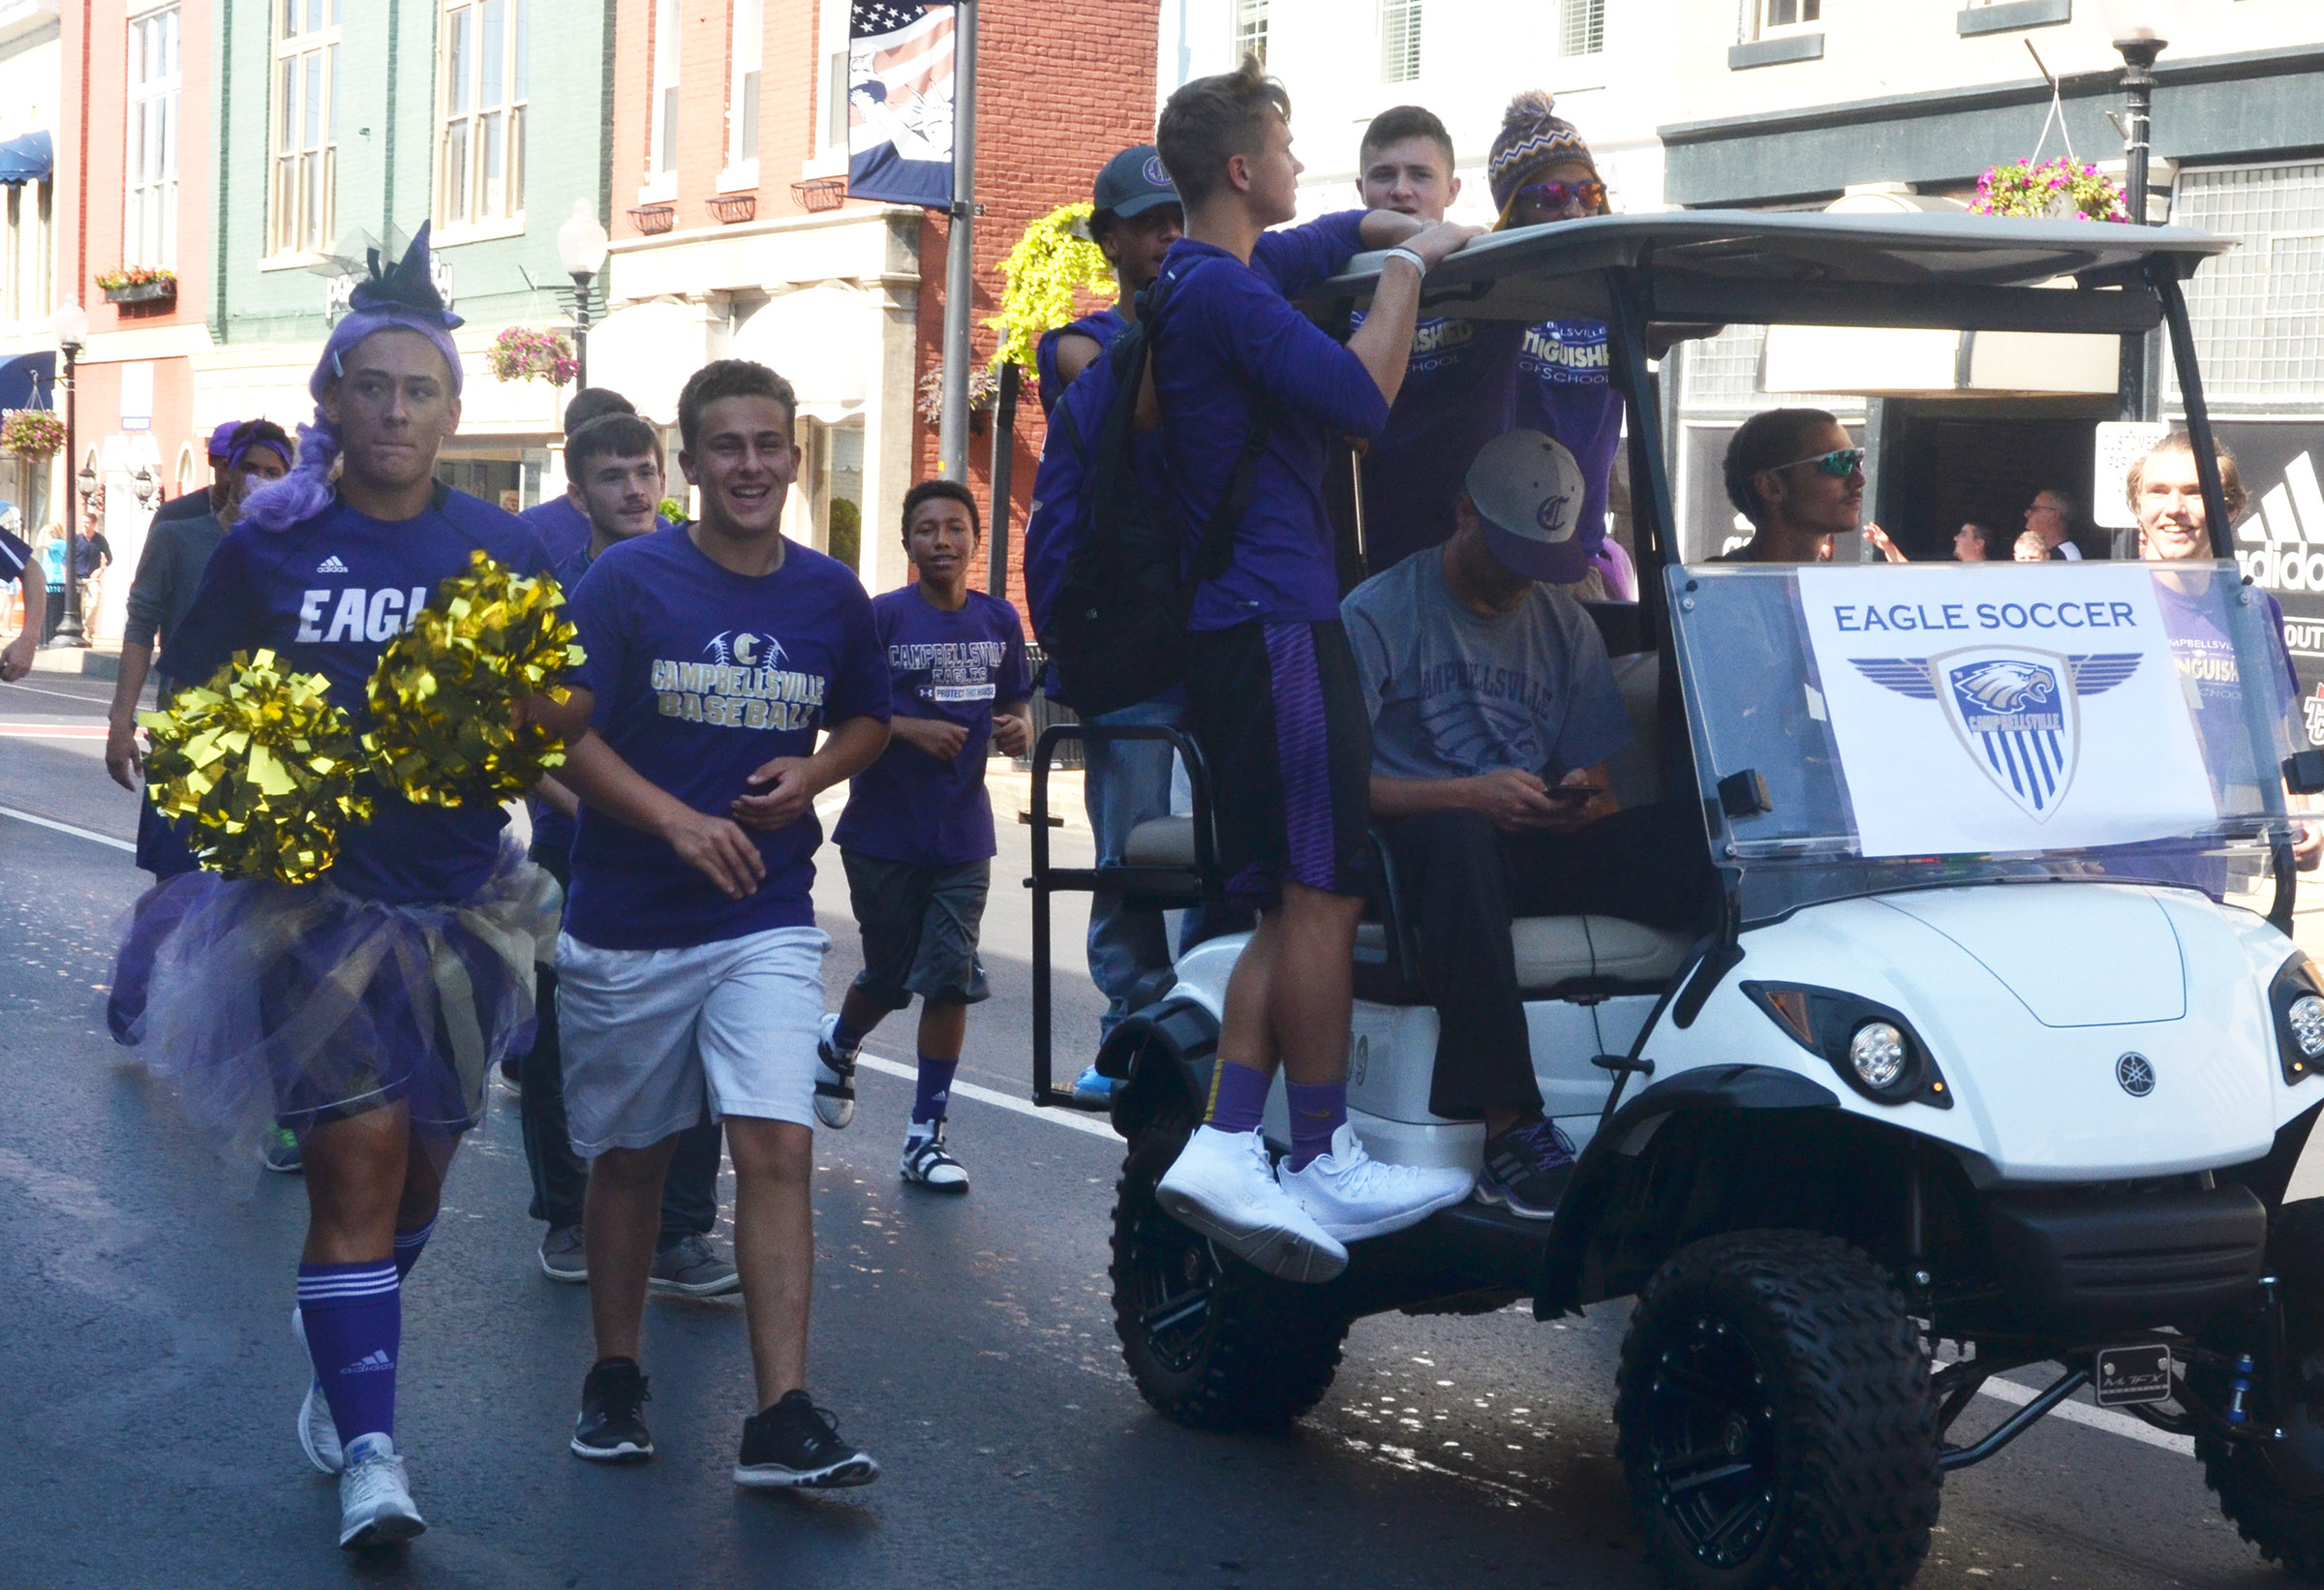 CHS soccer players ride in the parade.